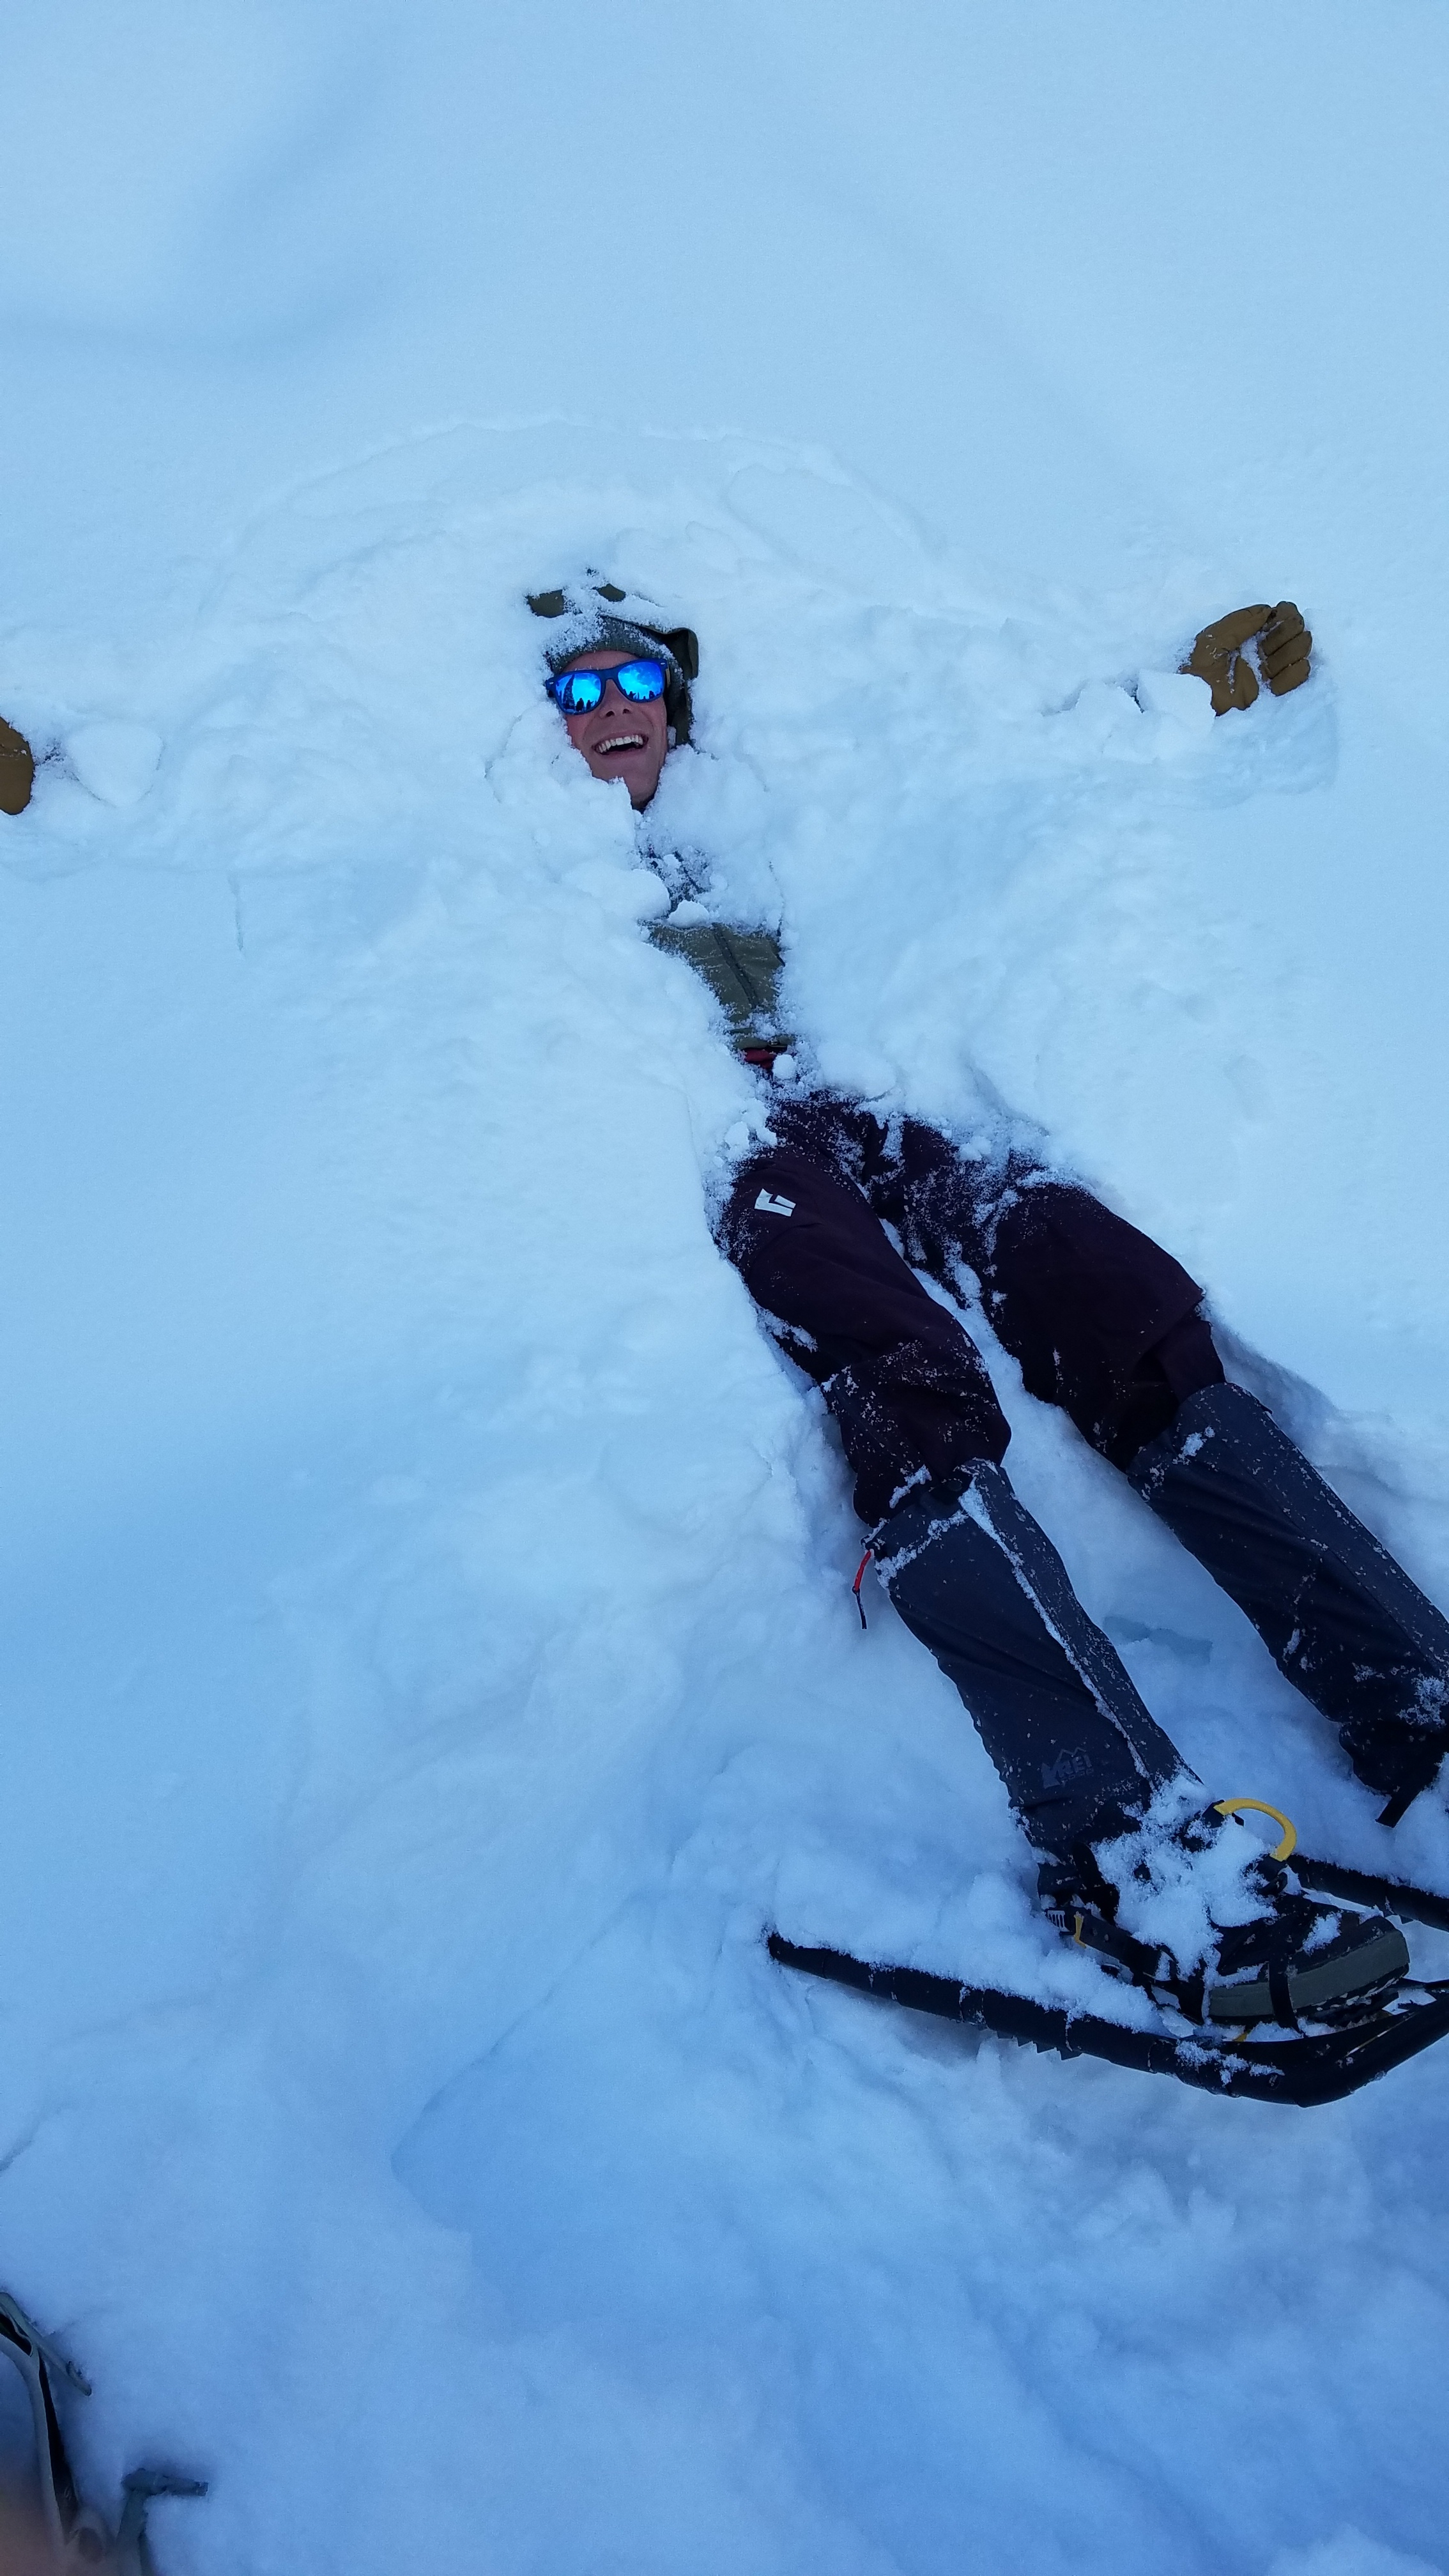 too much snow??